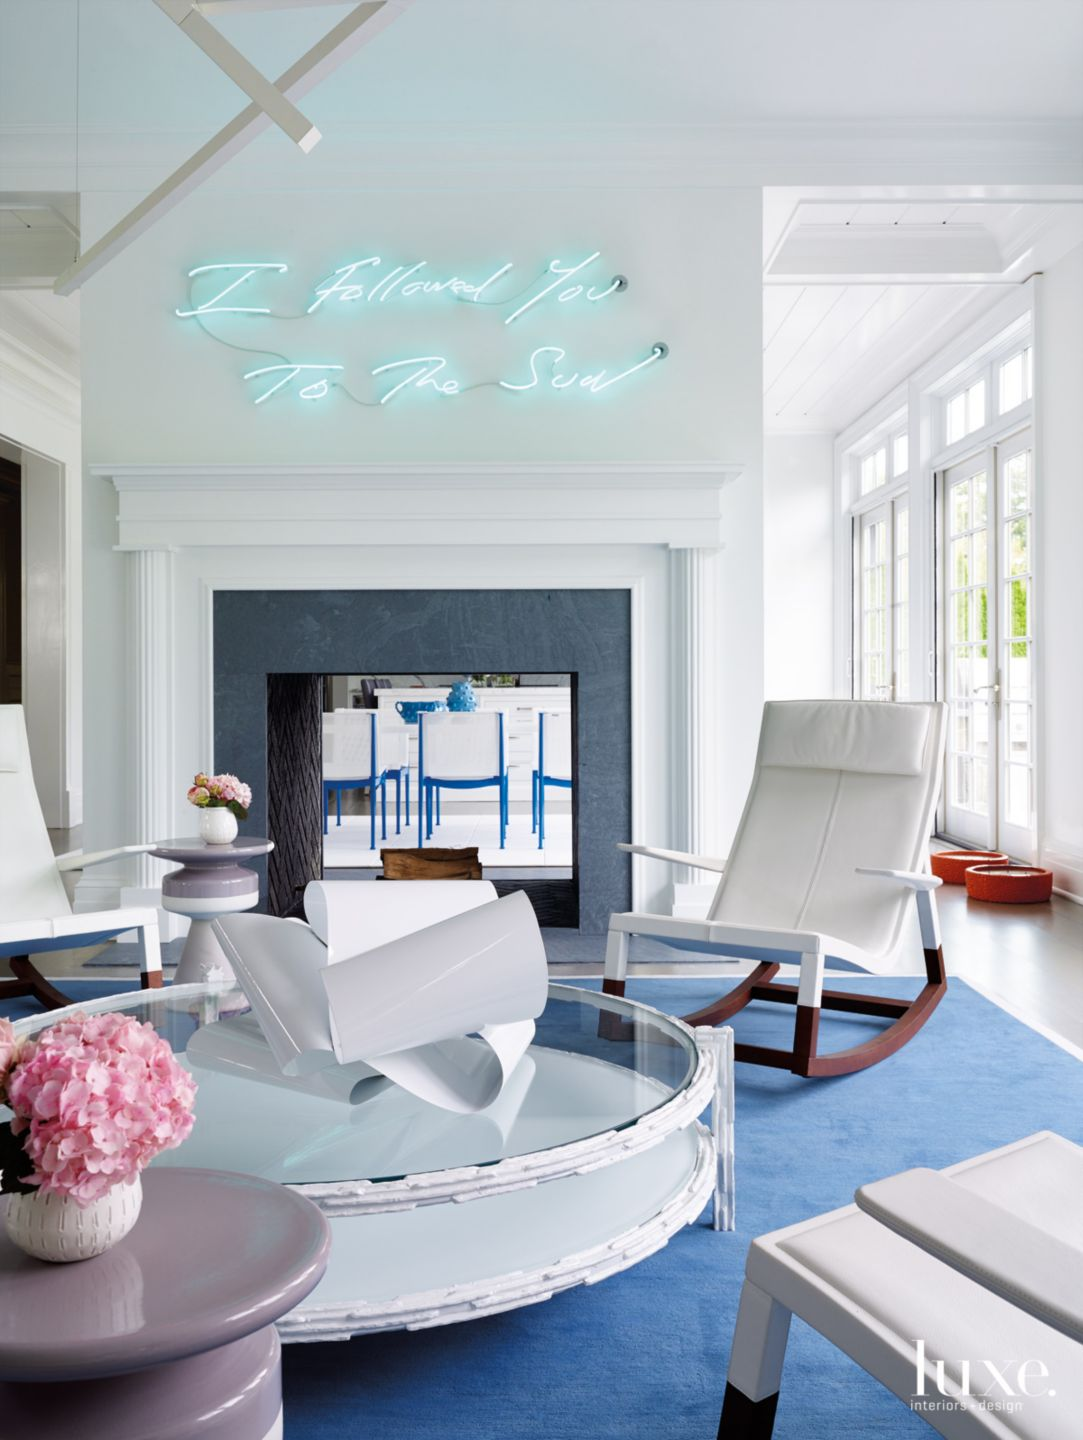 Contemporary White Lounge Area with Neon Art